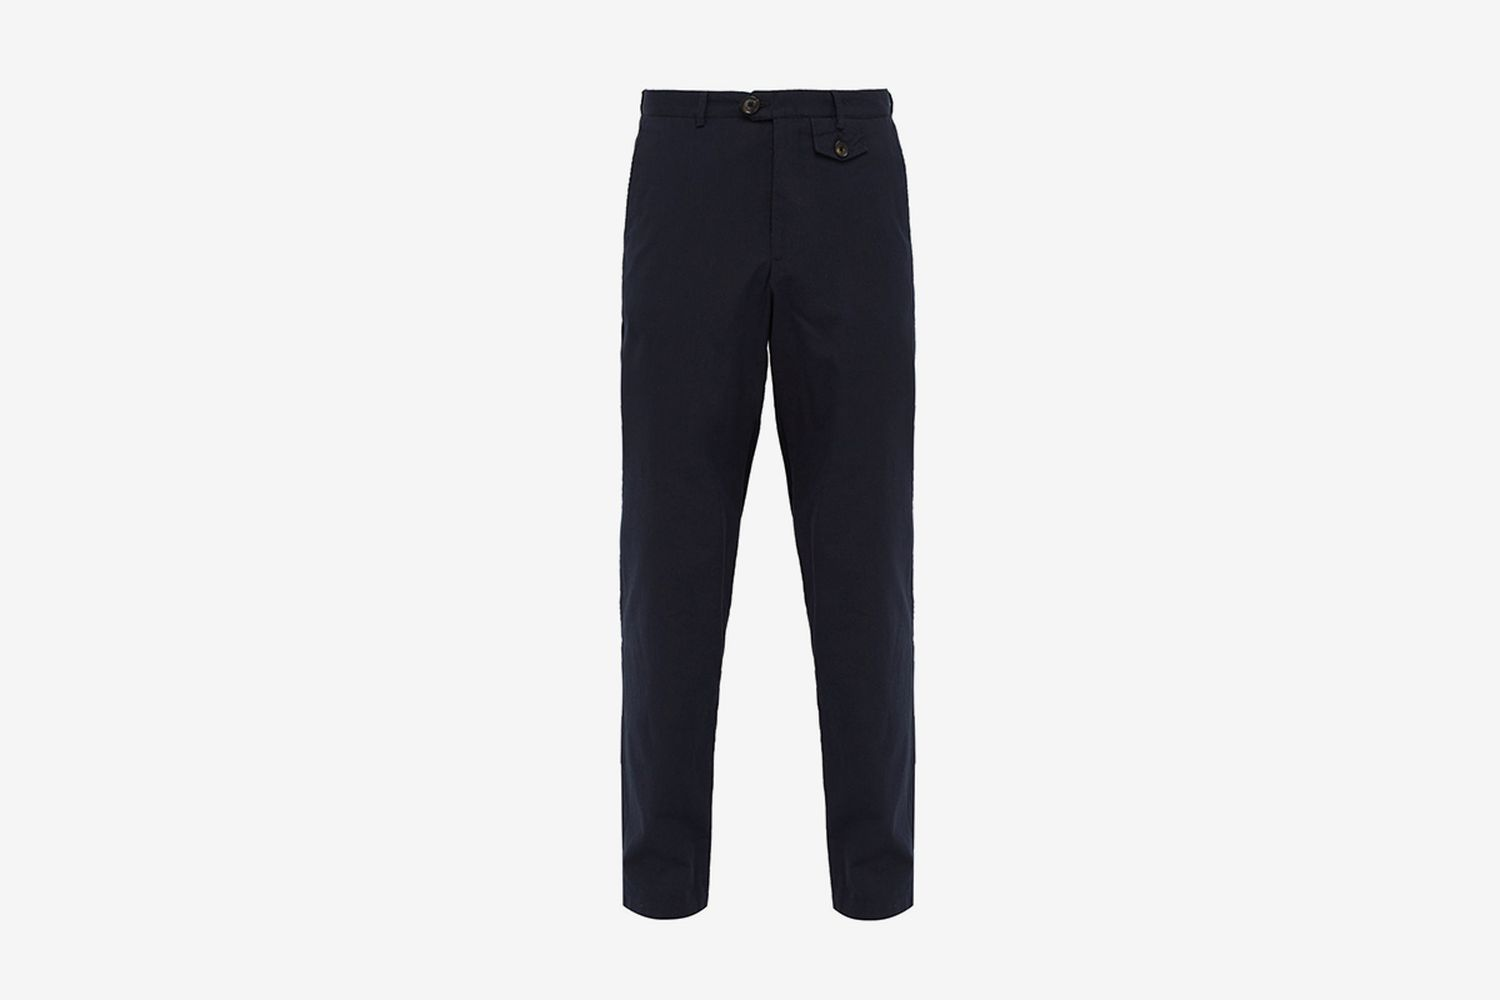 Theobald Ribbed Cotton Trousers